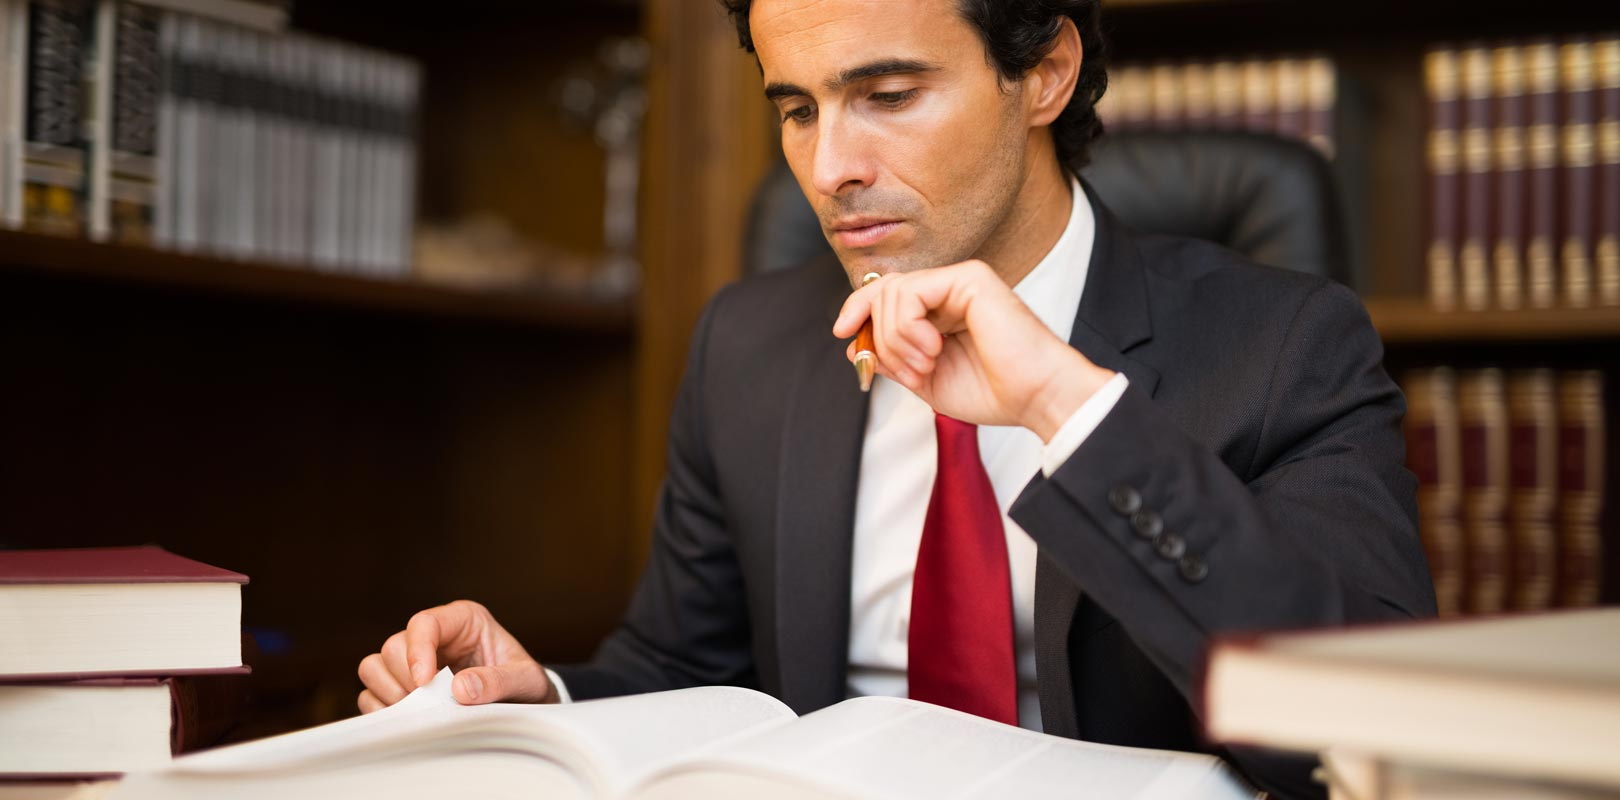 A solicitor studying a law book